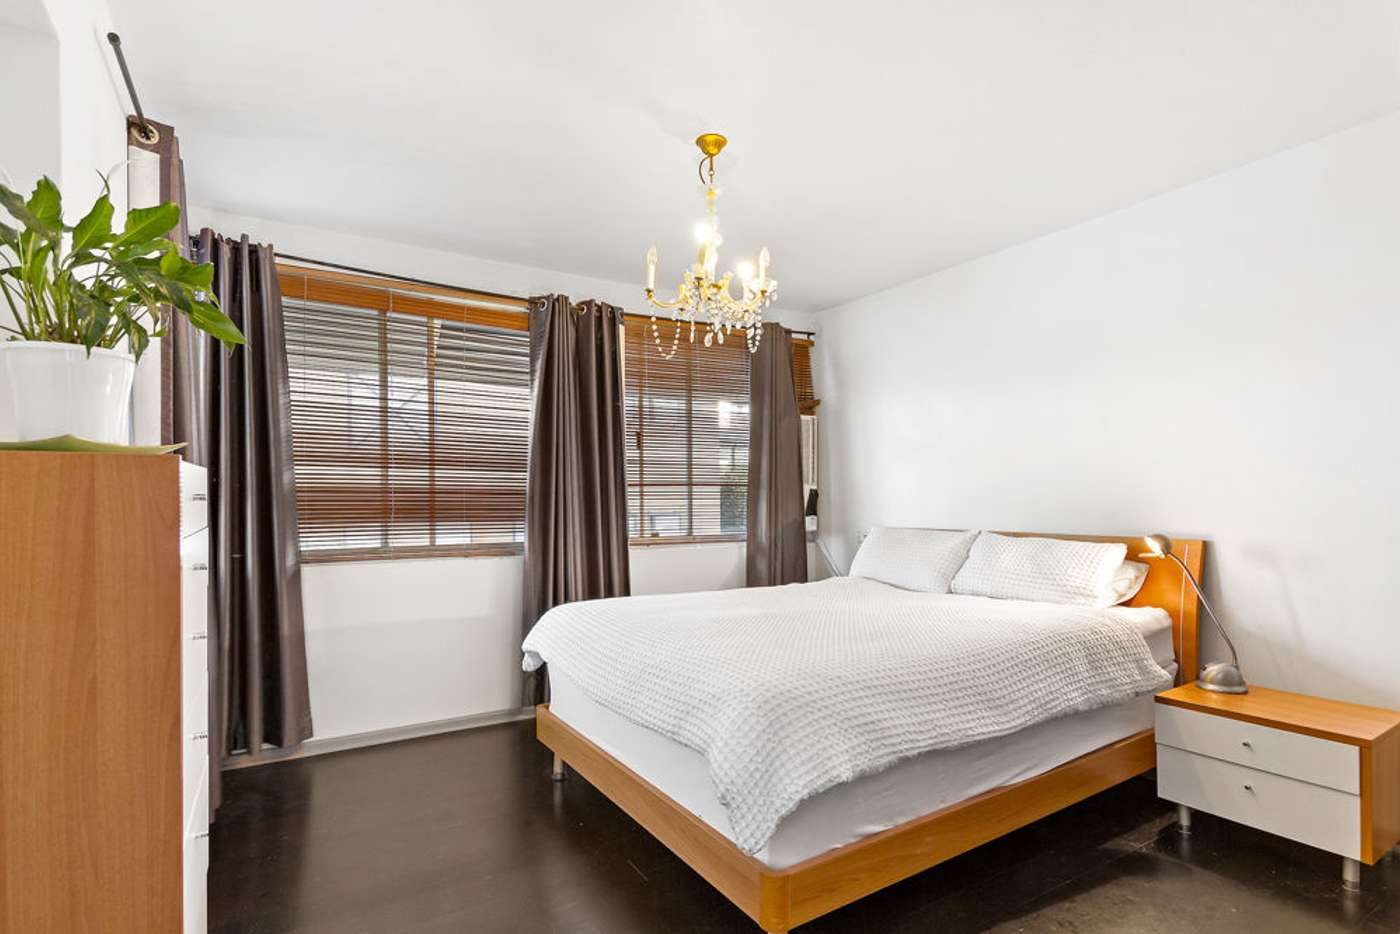 Seventh view of Homely unit listing, 11/64 Thorn Street, Kangaroo Point QLD 4169